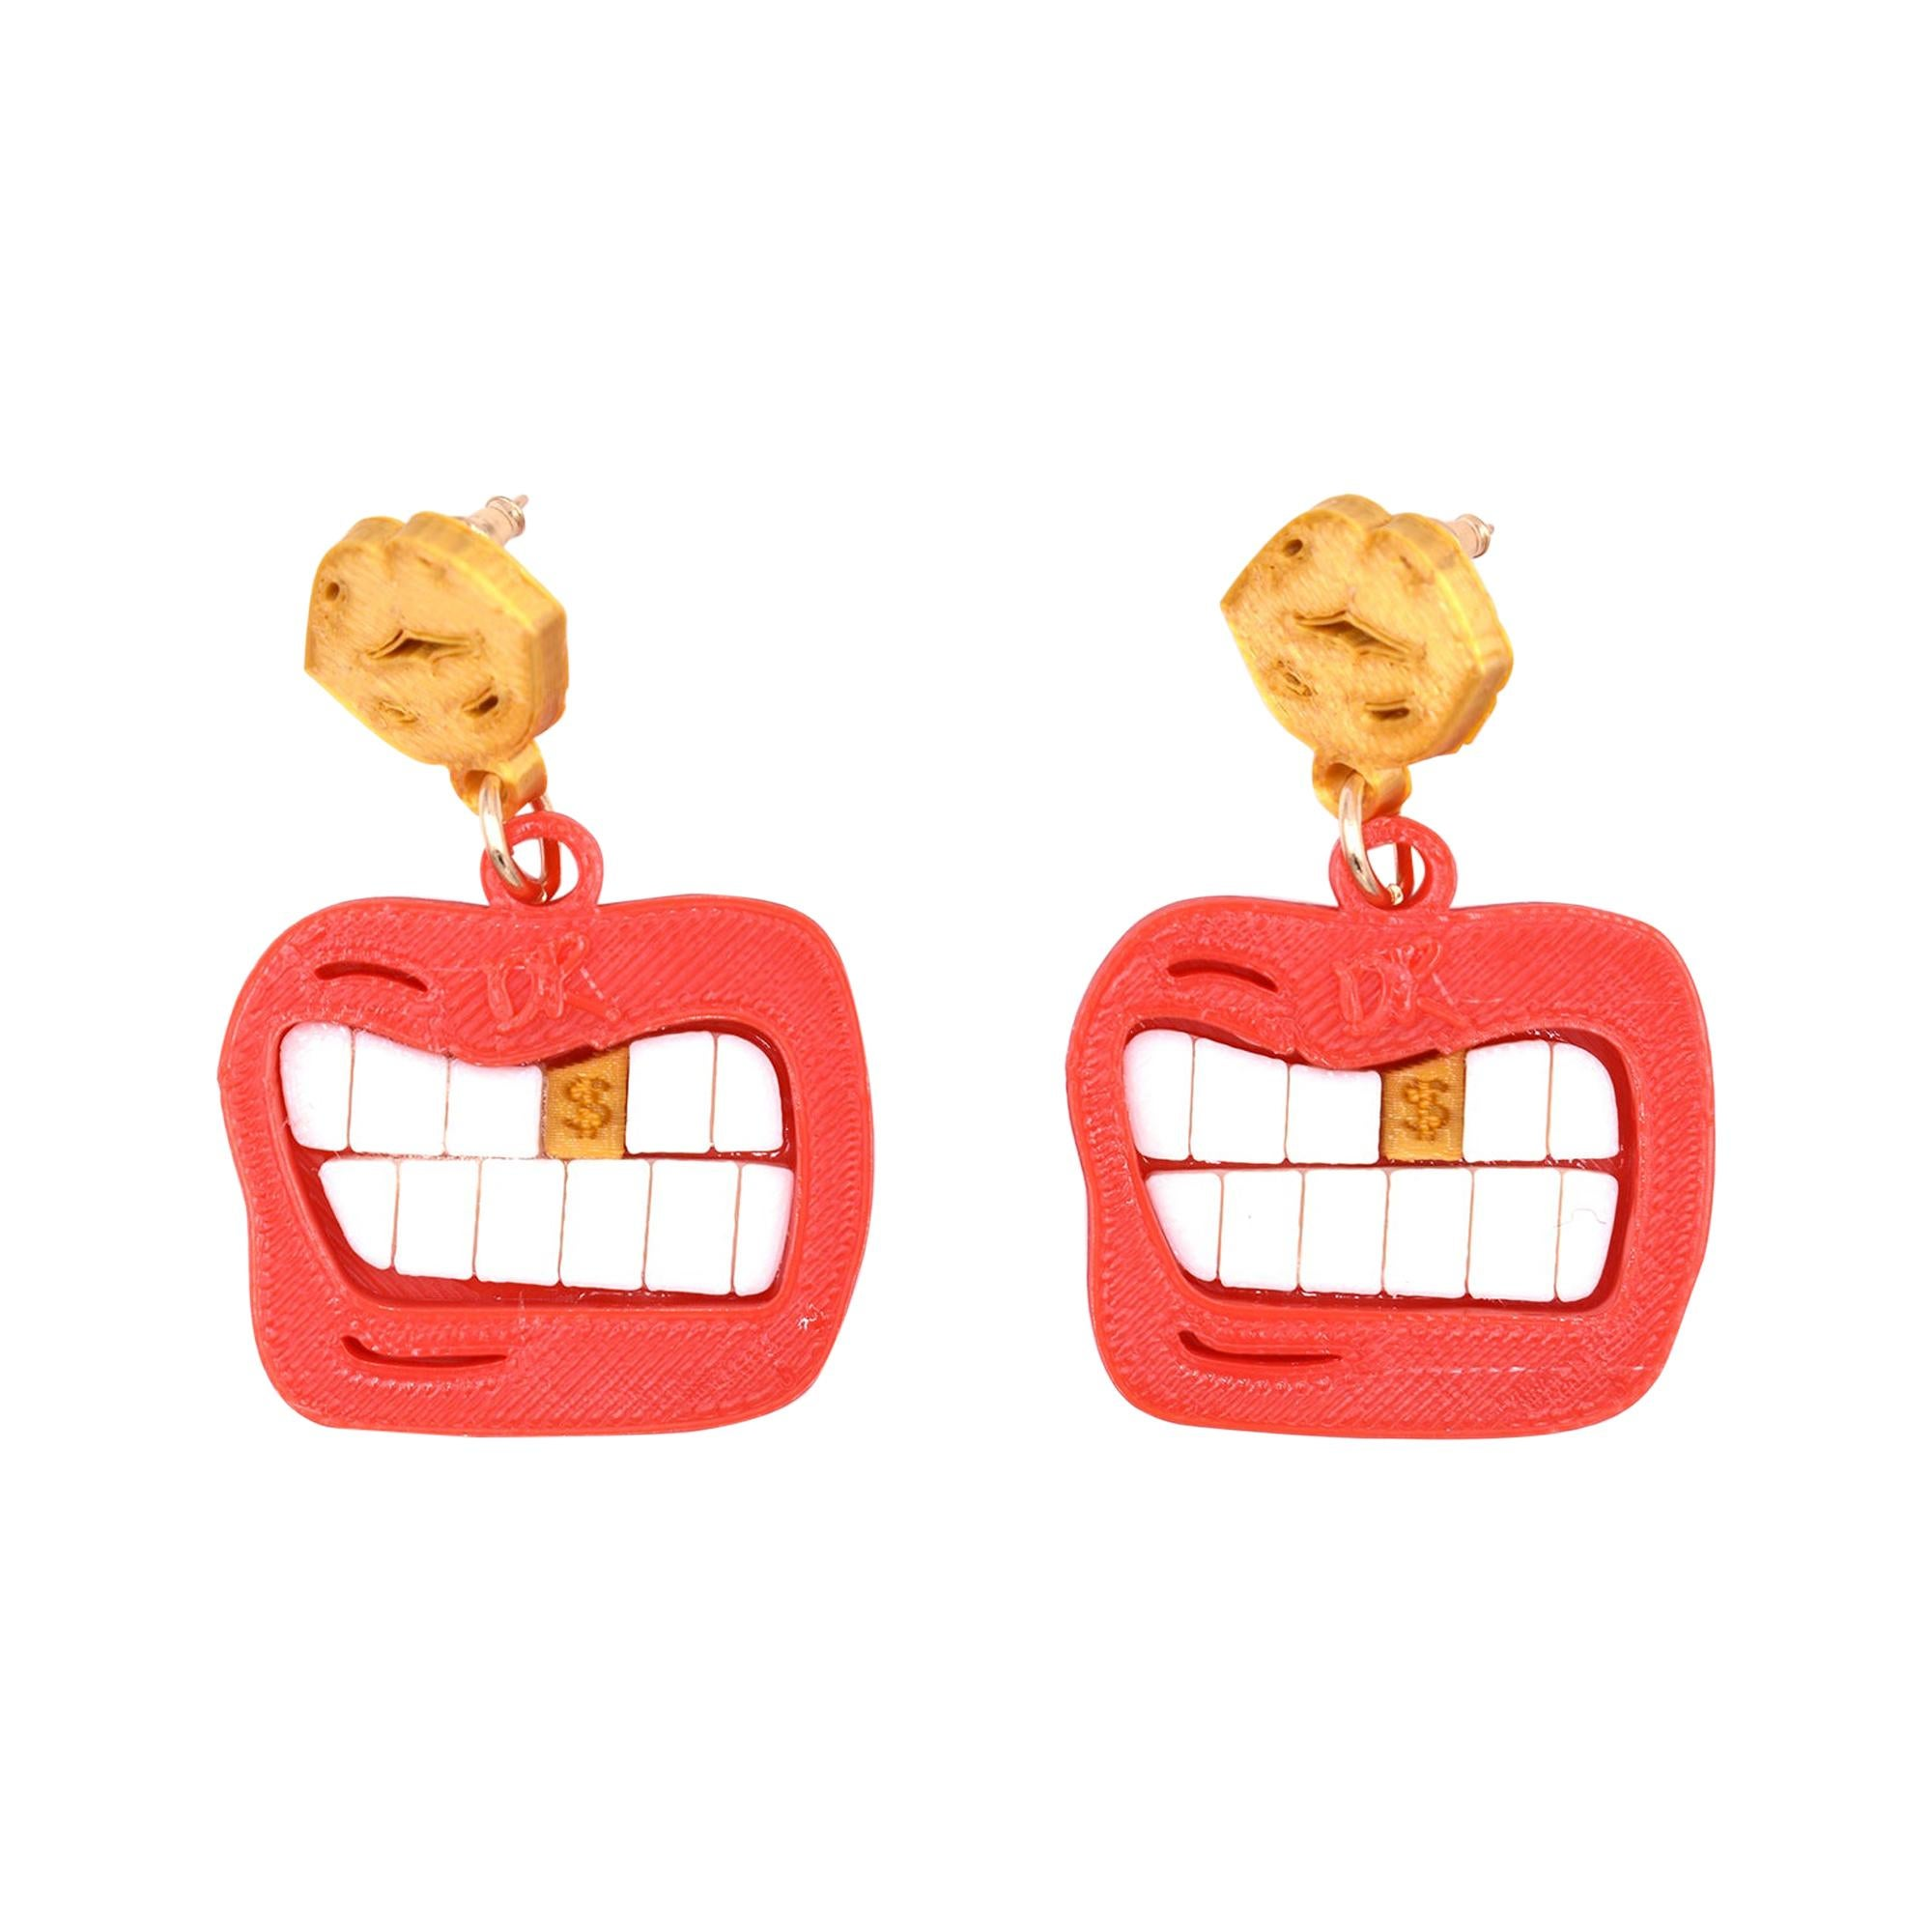 3d Printed Red Money Mouth Earrings